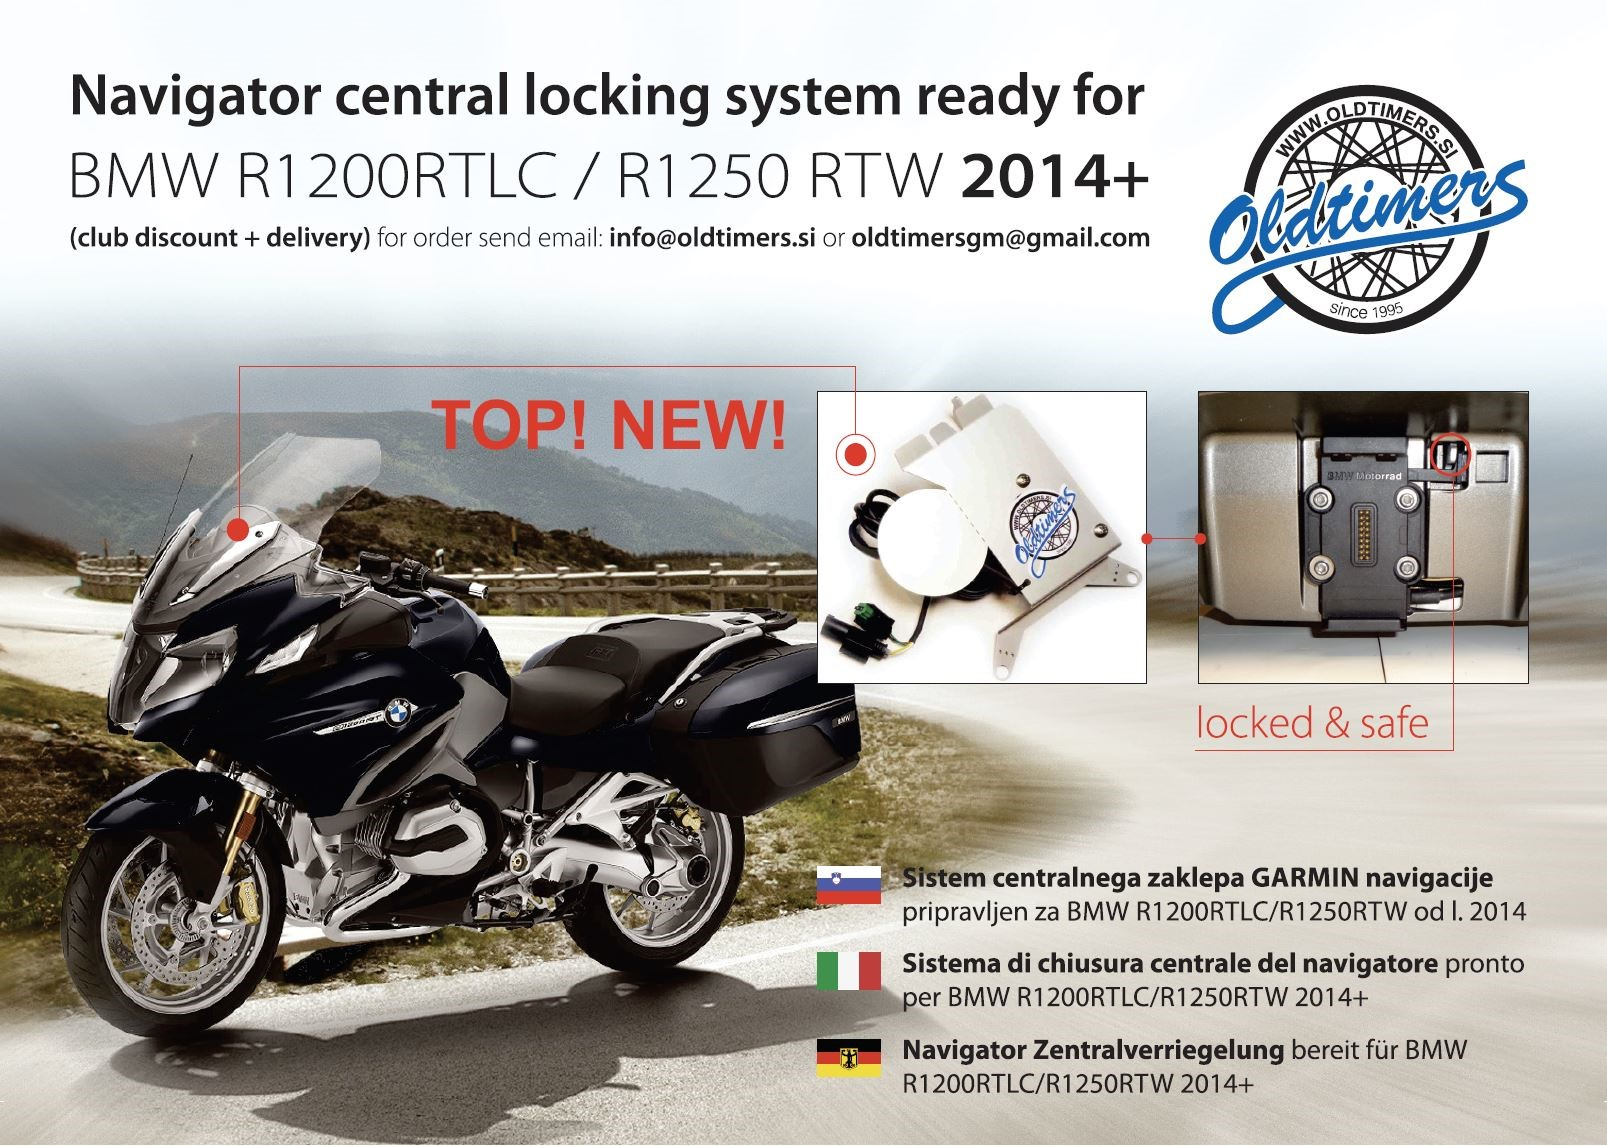 Navi Lock System ready for BMW R1200RT R1250 RT Custom